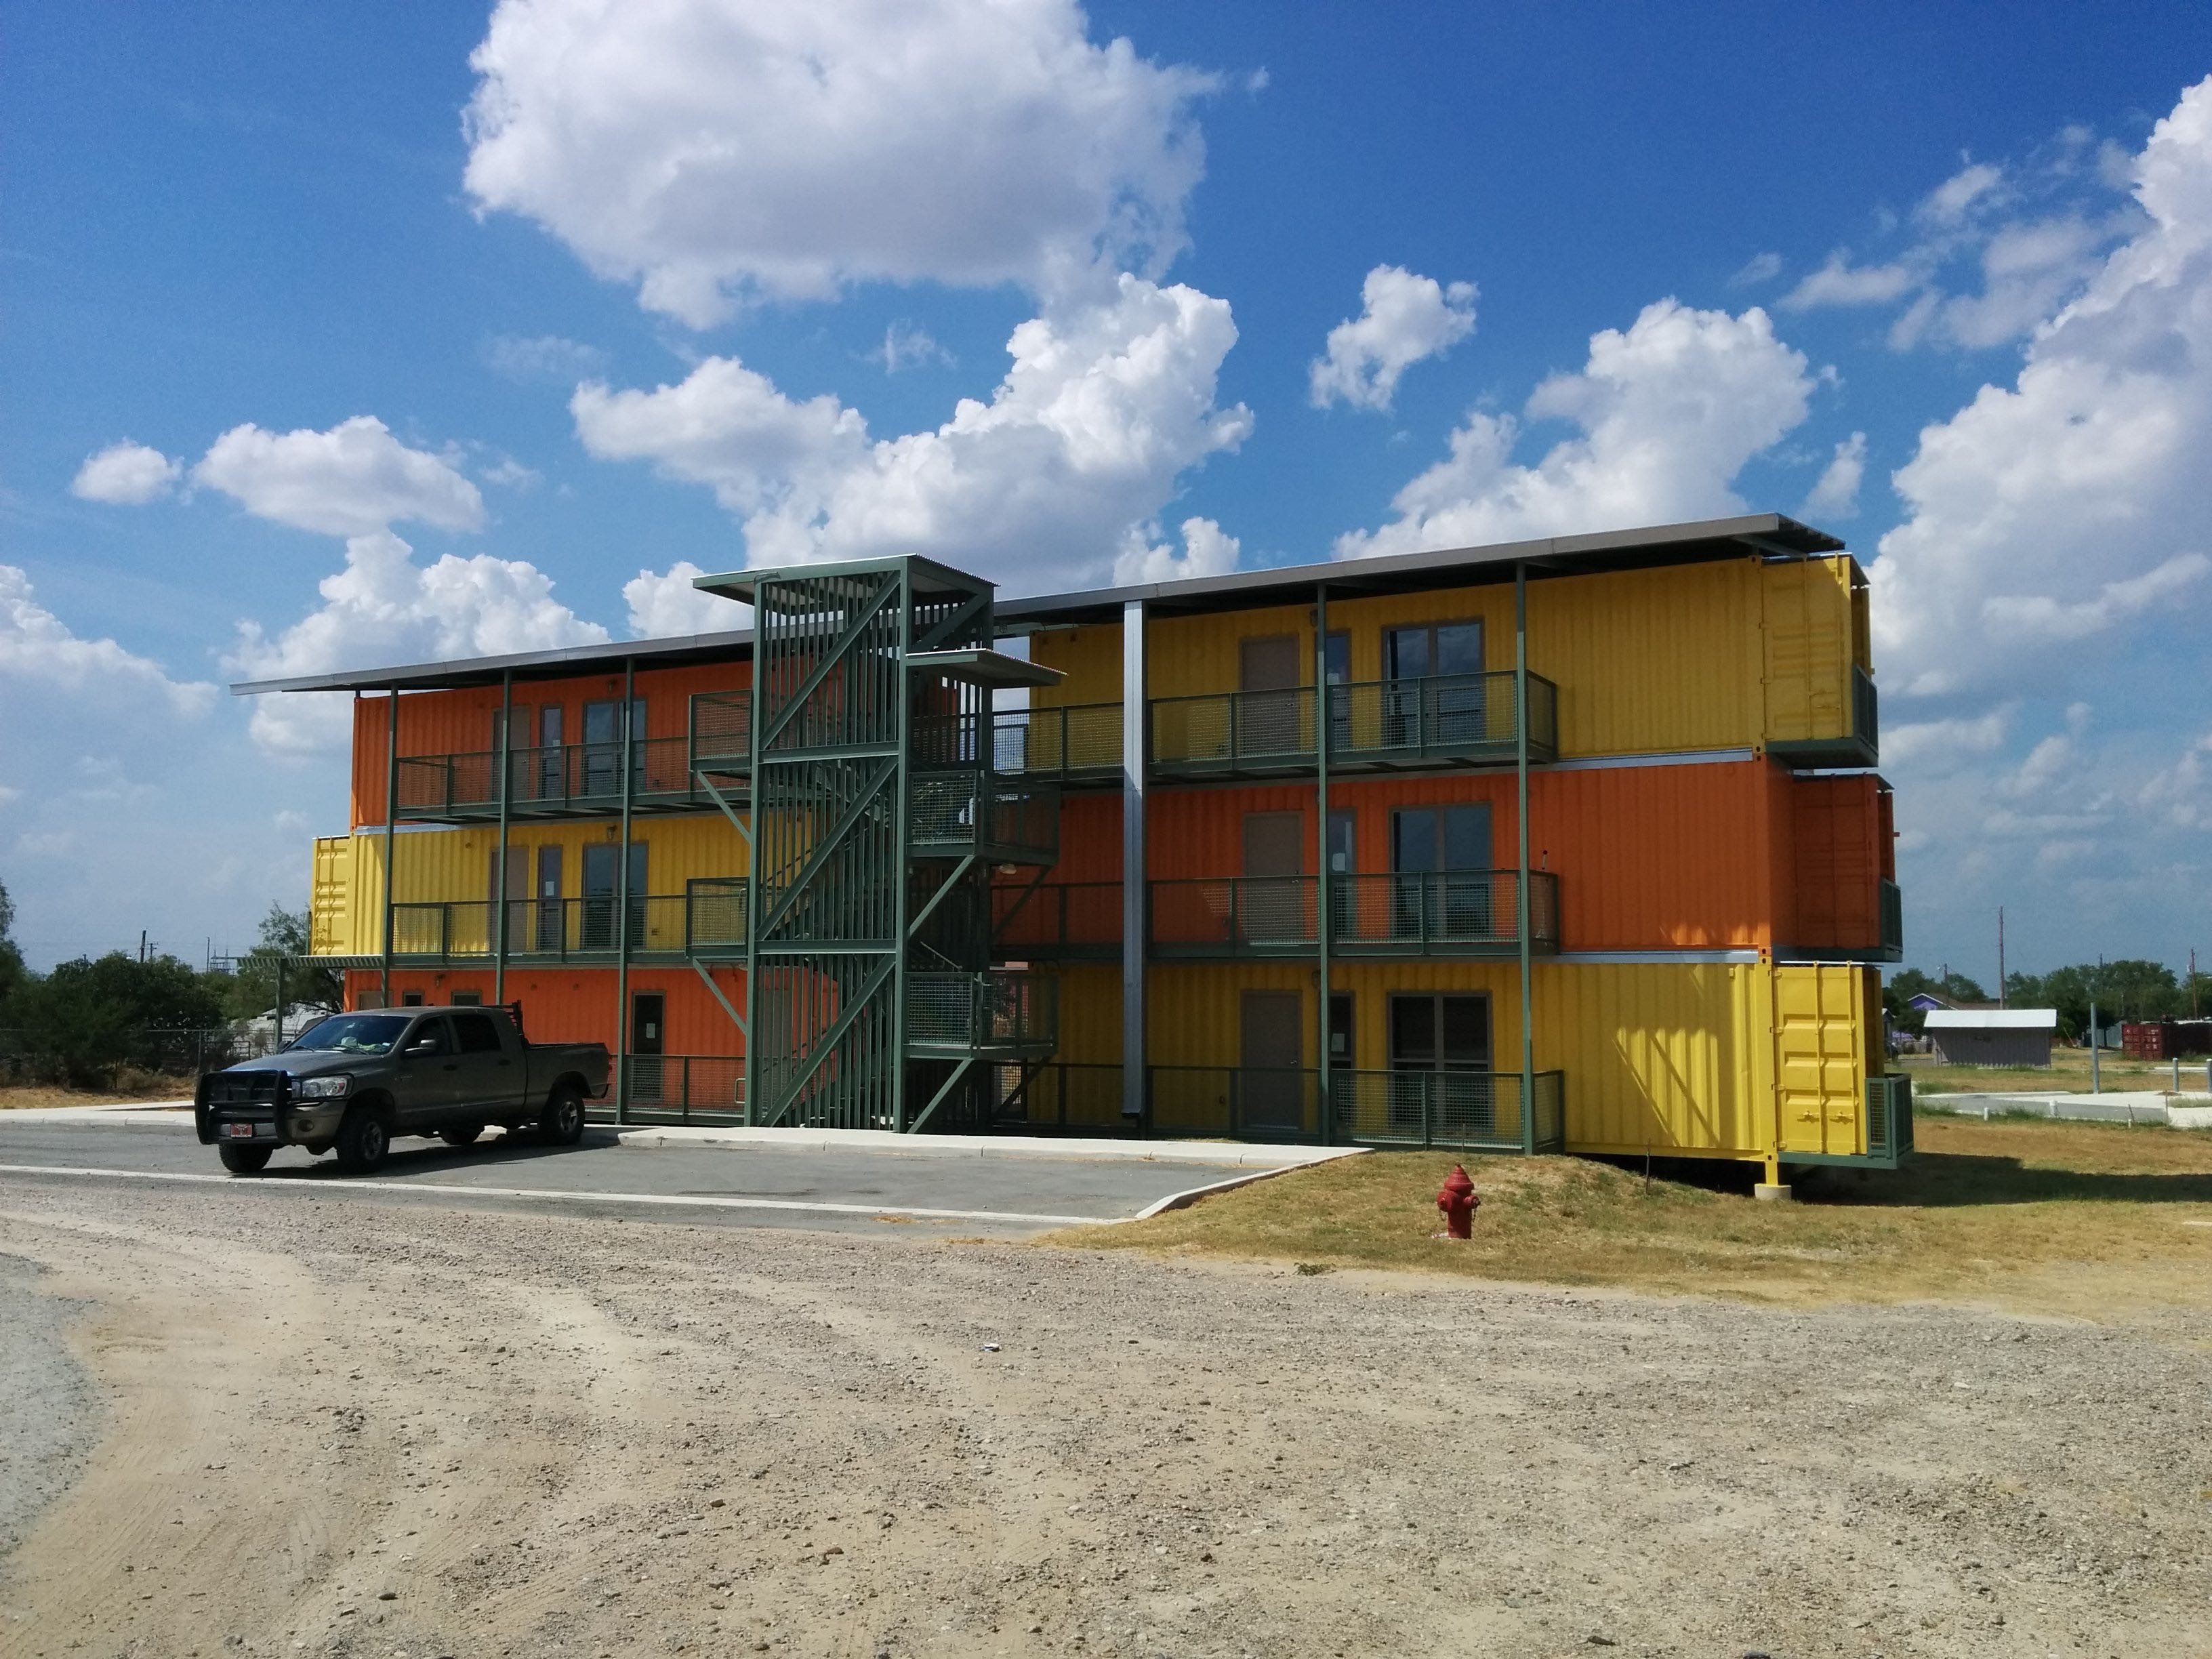 San Antonio Developer Completes Shipping Container